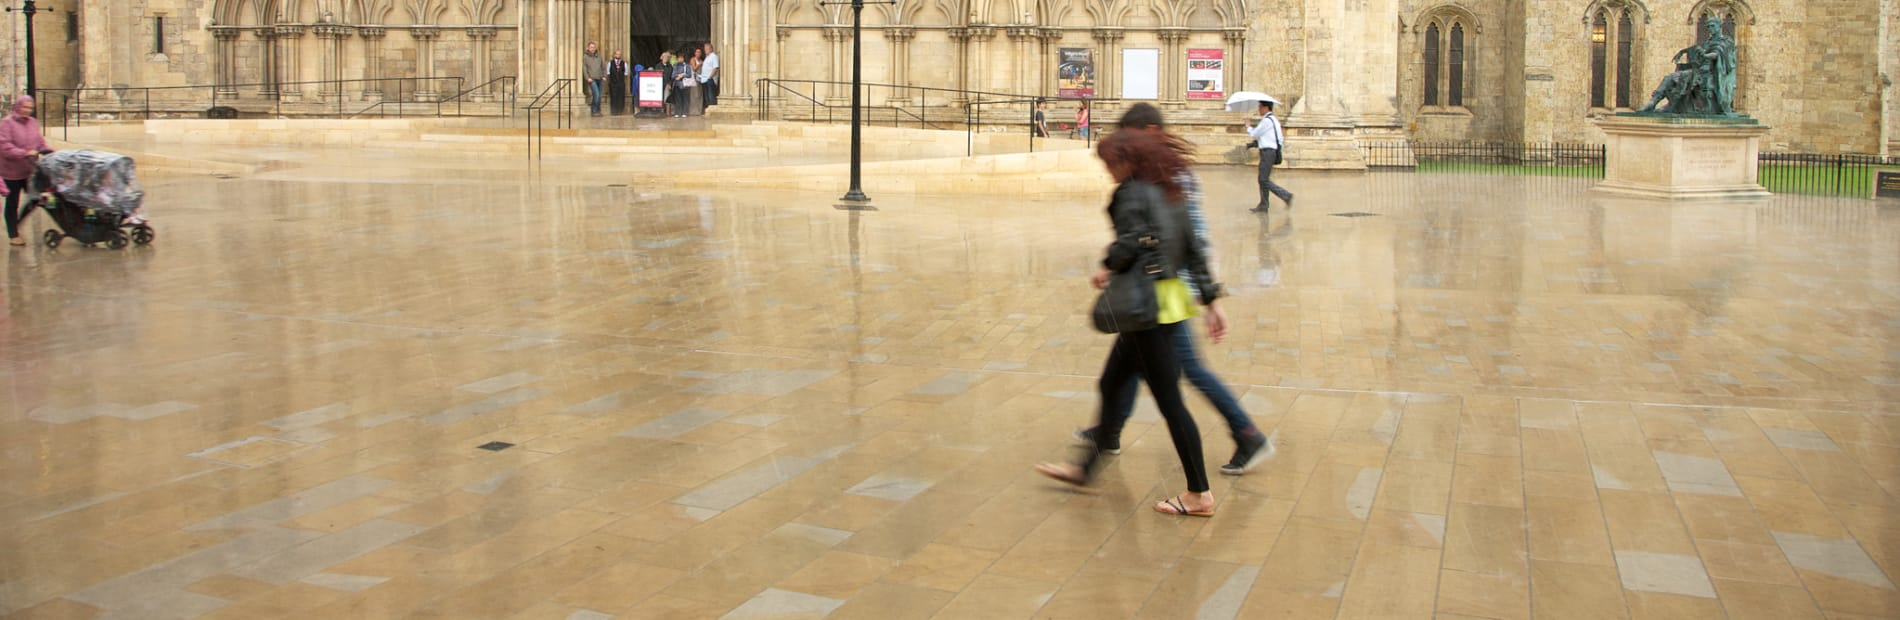 People walking outside cathedral